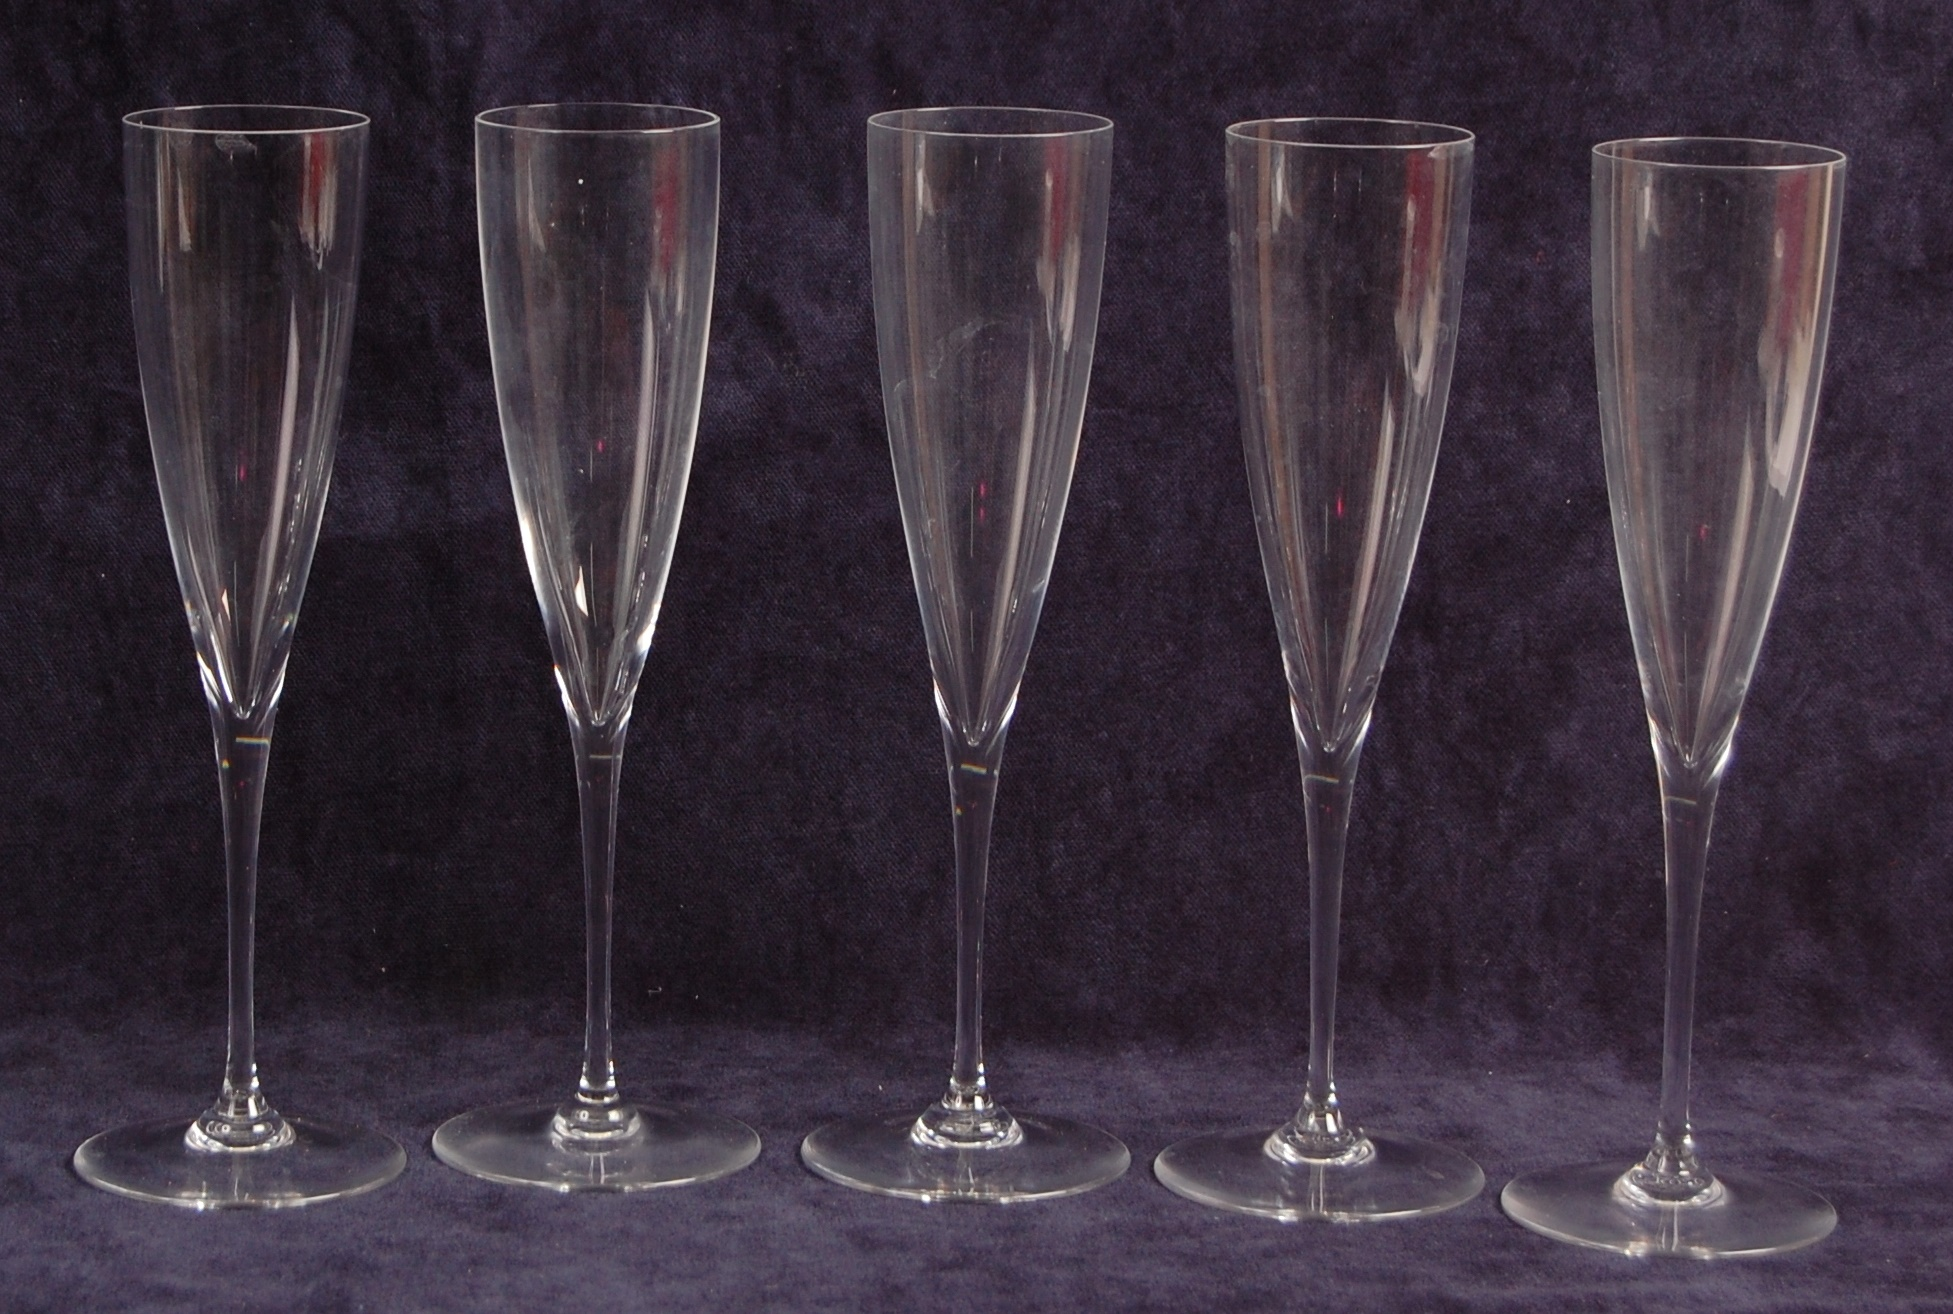 A set of five Baccarat crystal glass champagne flutes, of plain tapering long stemmed form, each